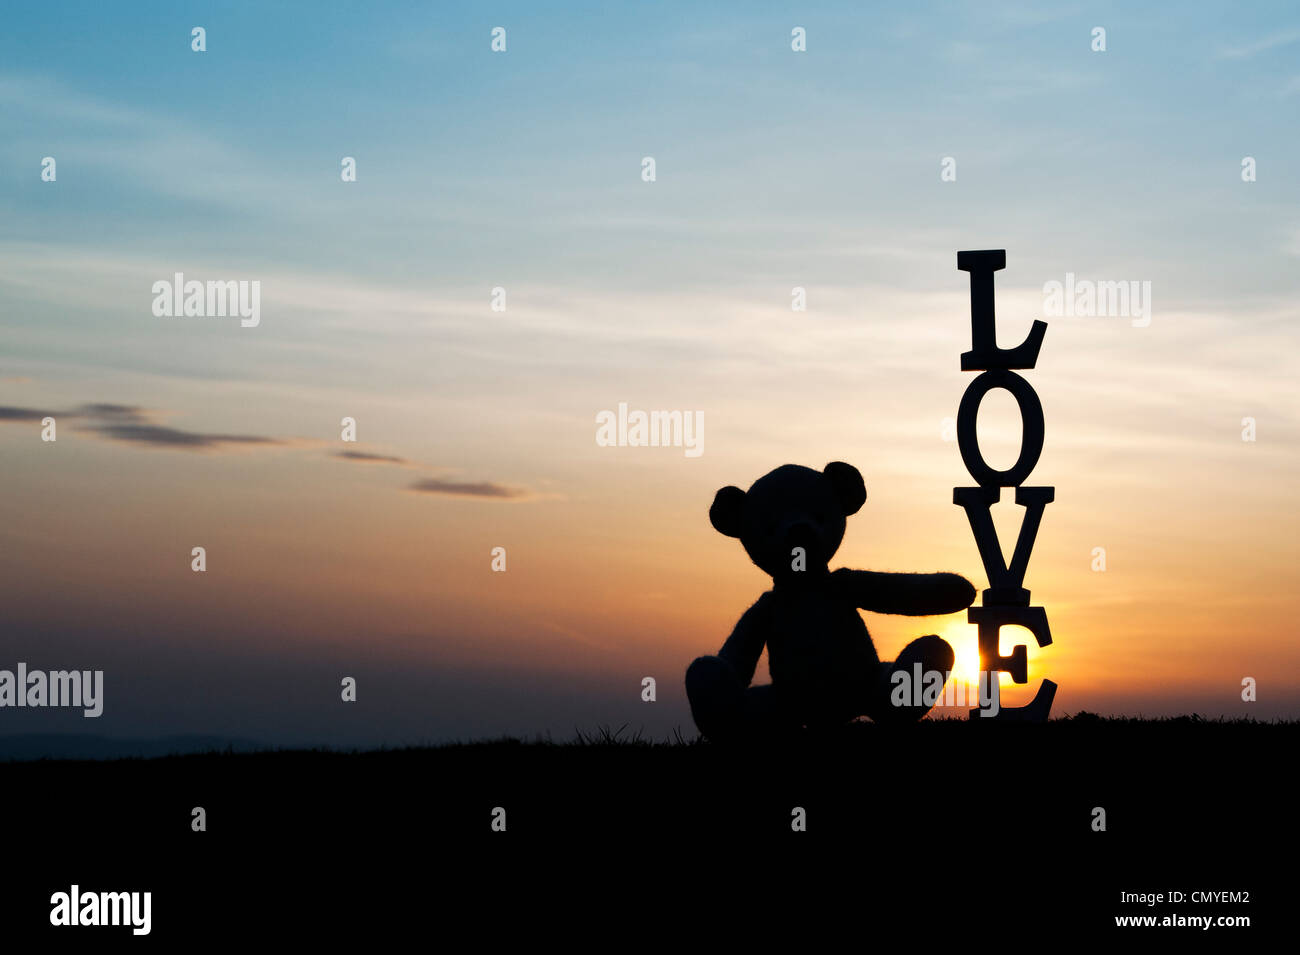 Teddy bear sitting next too the word LOVE at sunset. Silhouette - Stock Image